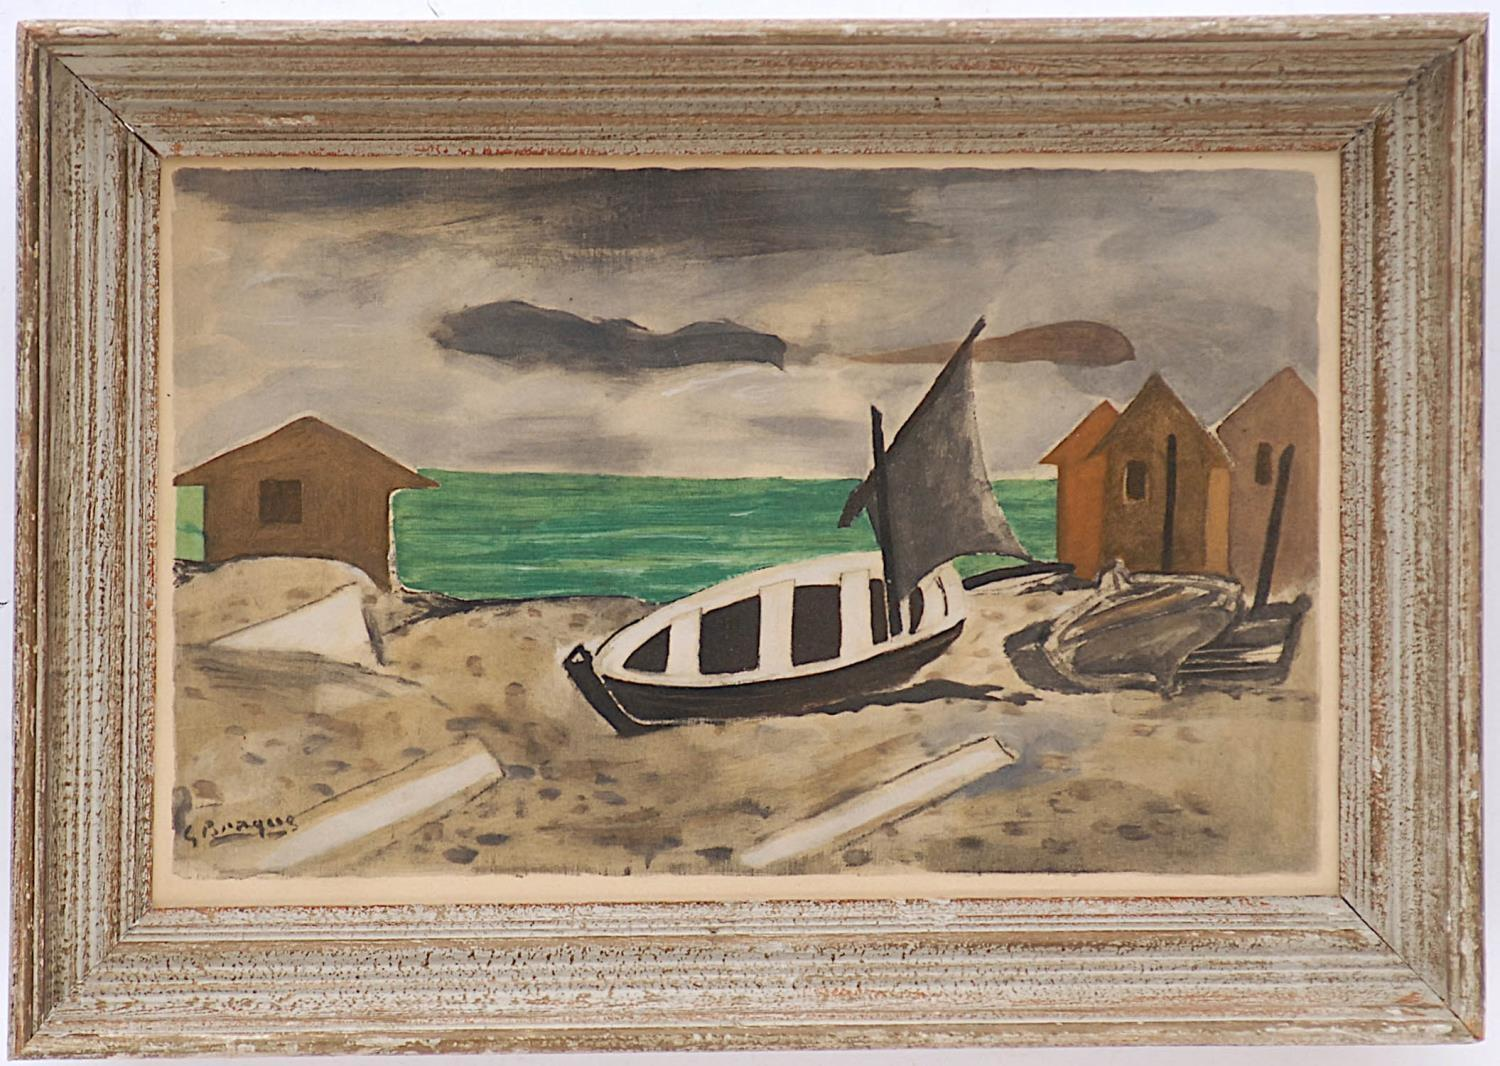 GEORGES BRAQUE 'Varangeville', pochoir, edition 970, printed by Jacomet, signed in the plate, suite: